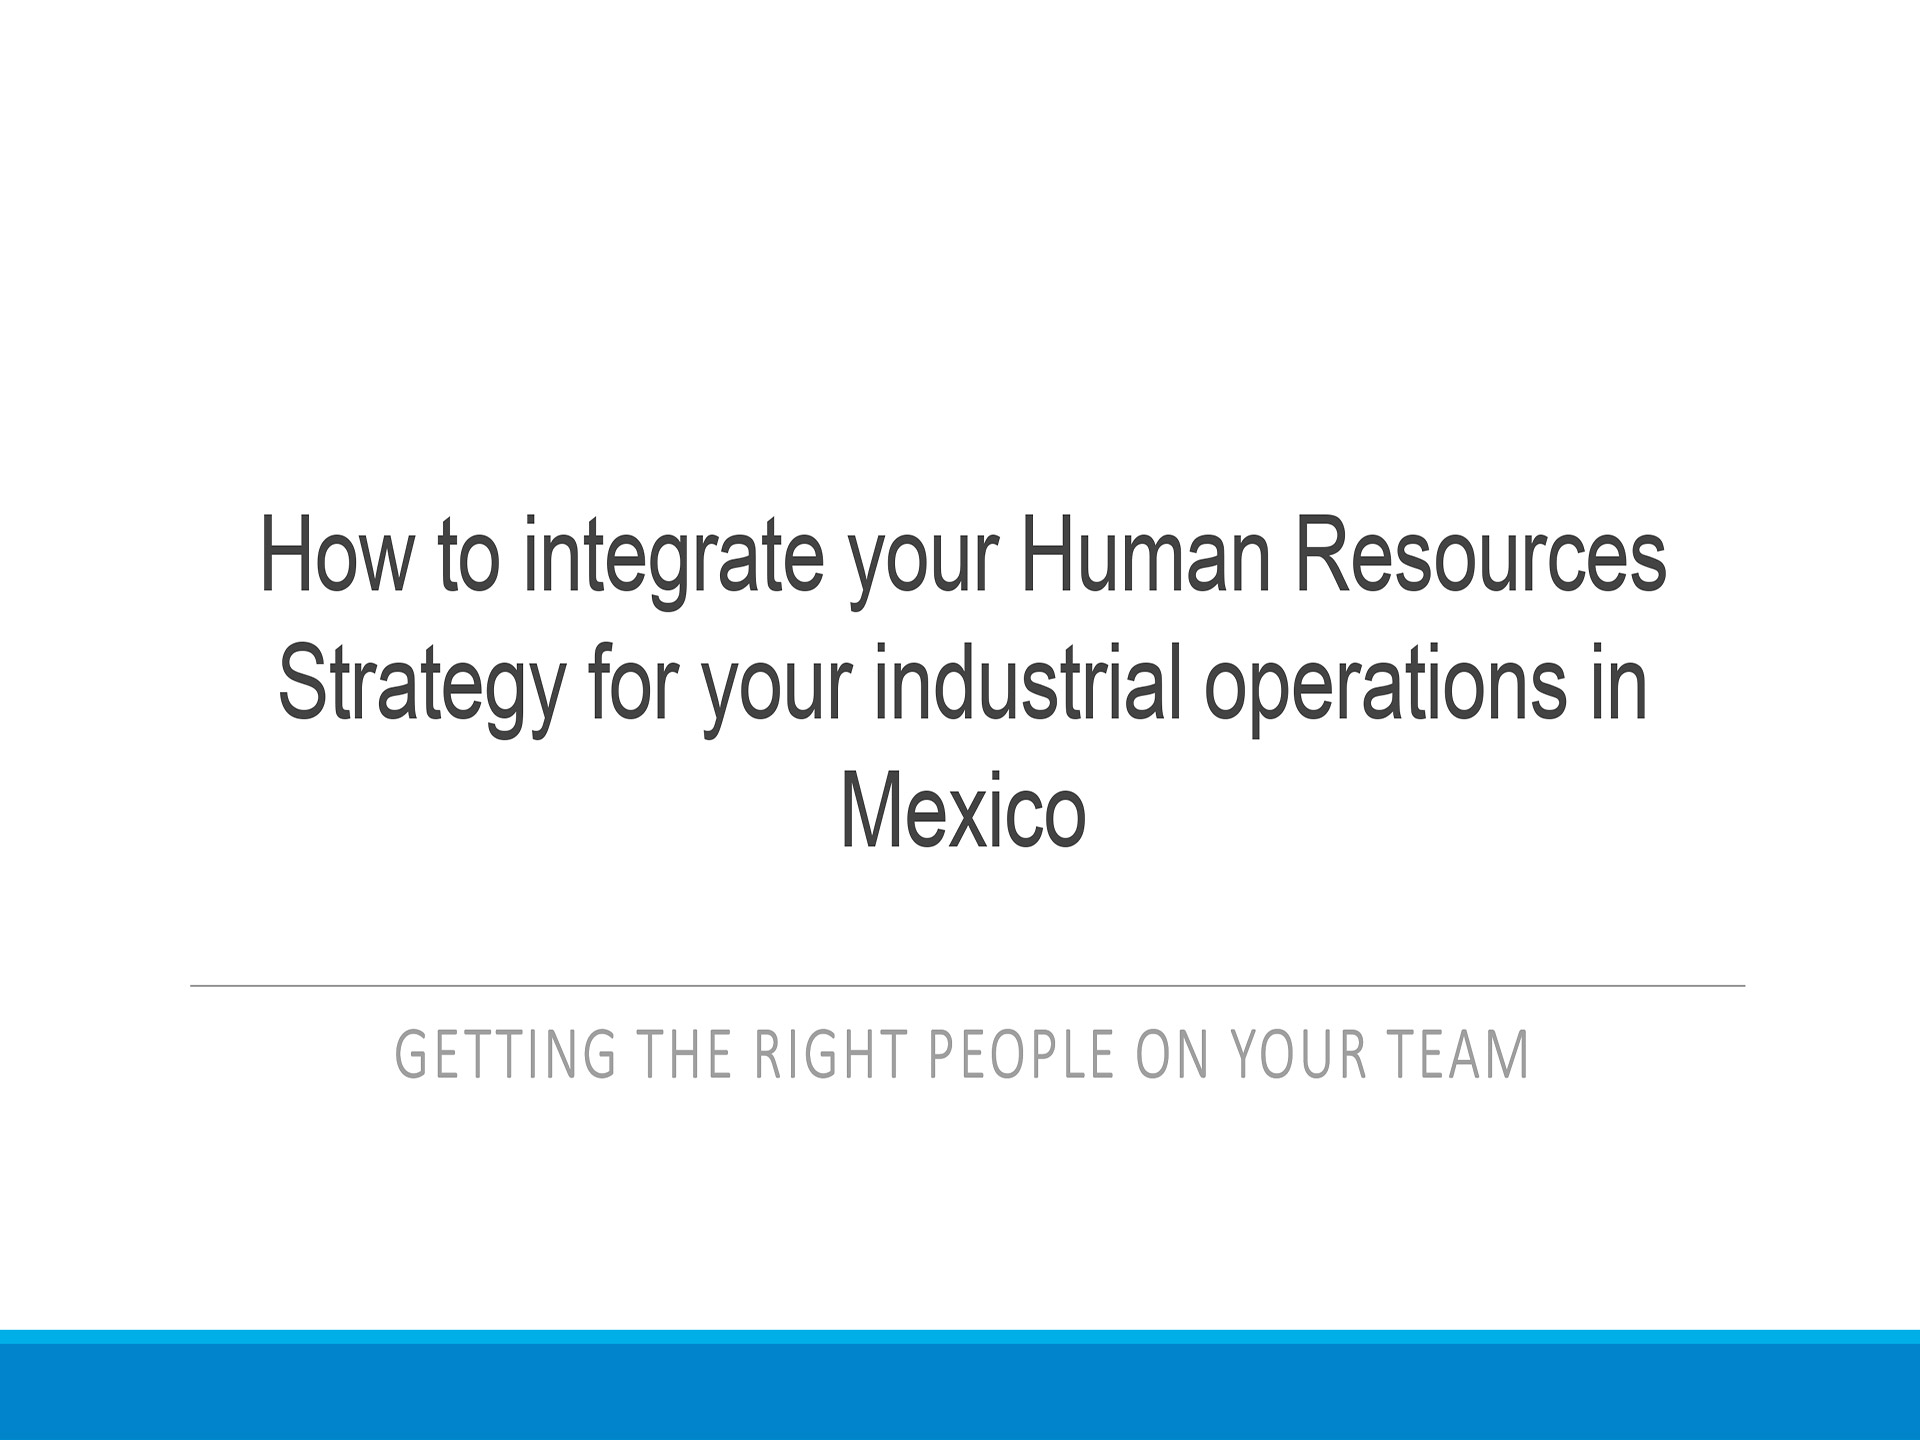 human-resources-ebook-1